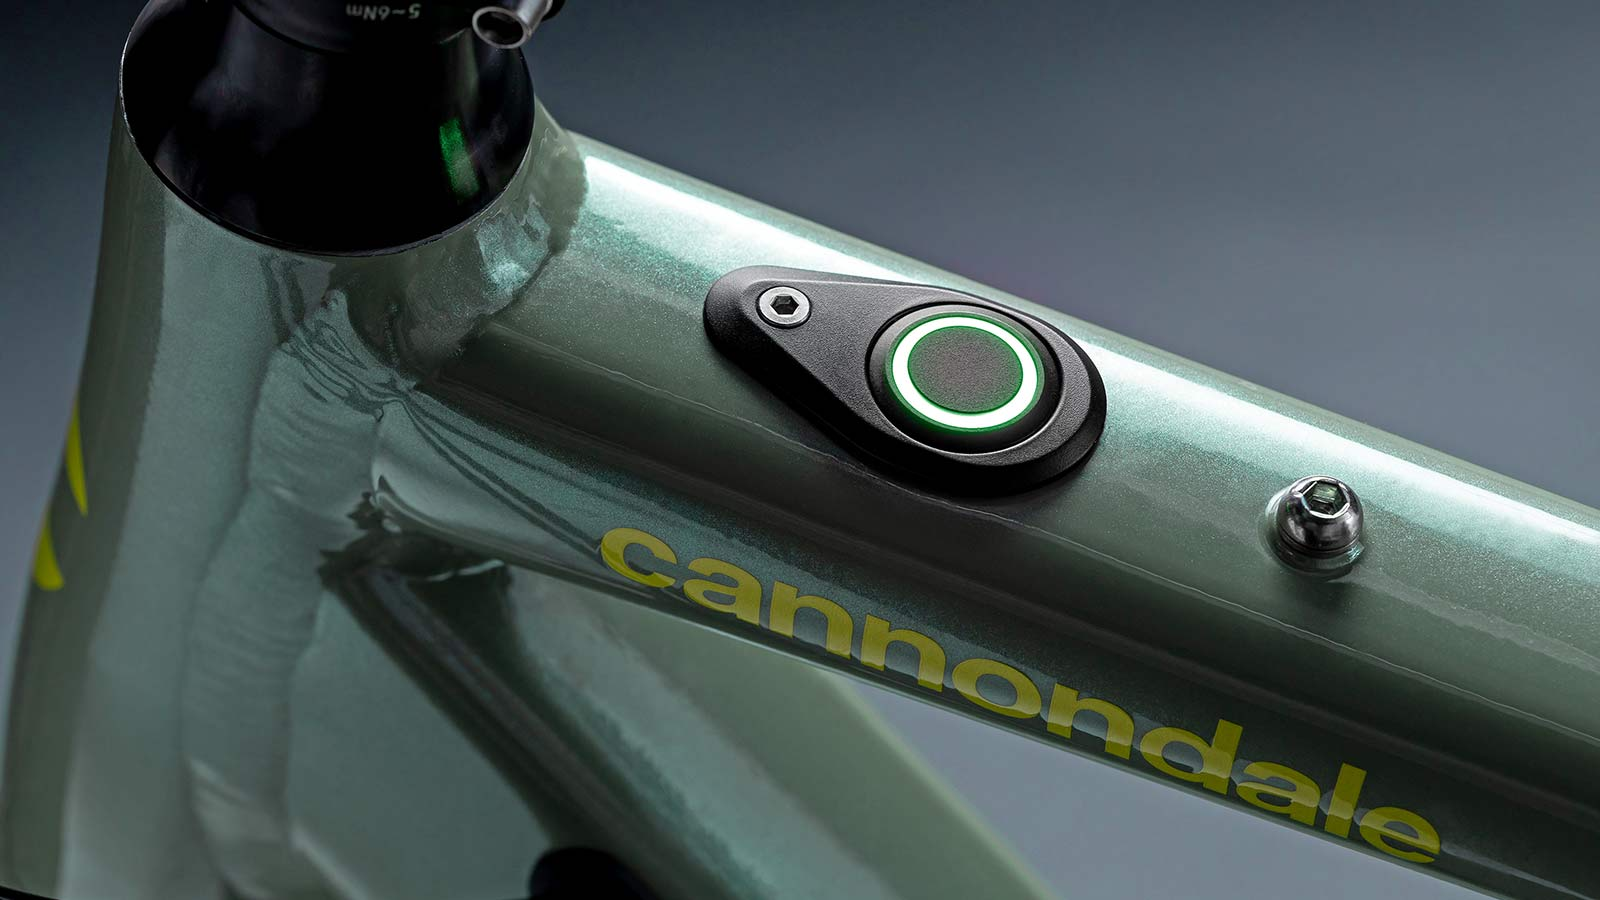 Cannondale Topstone Neo SL lightweight affordable alloy gravel e-bike,one-button control